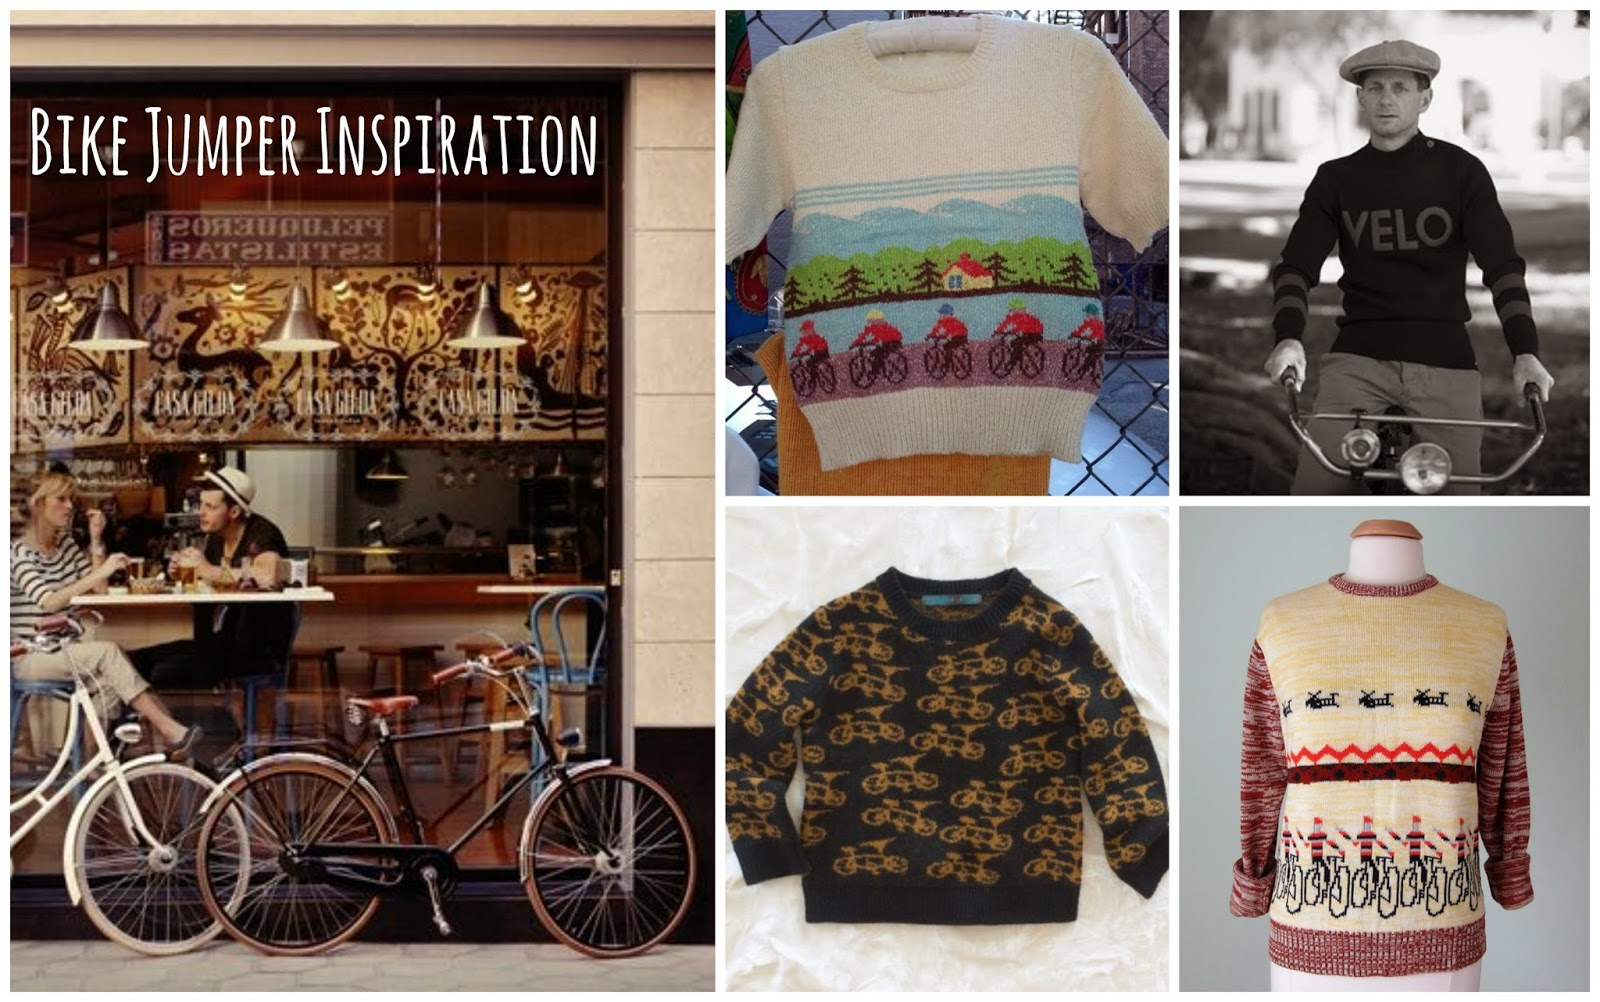 Bicycle Jumper Inspiration